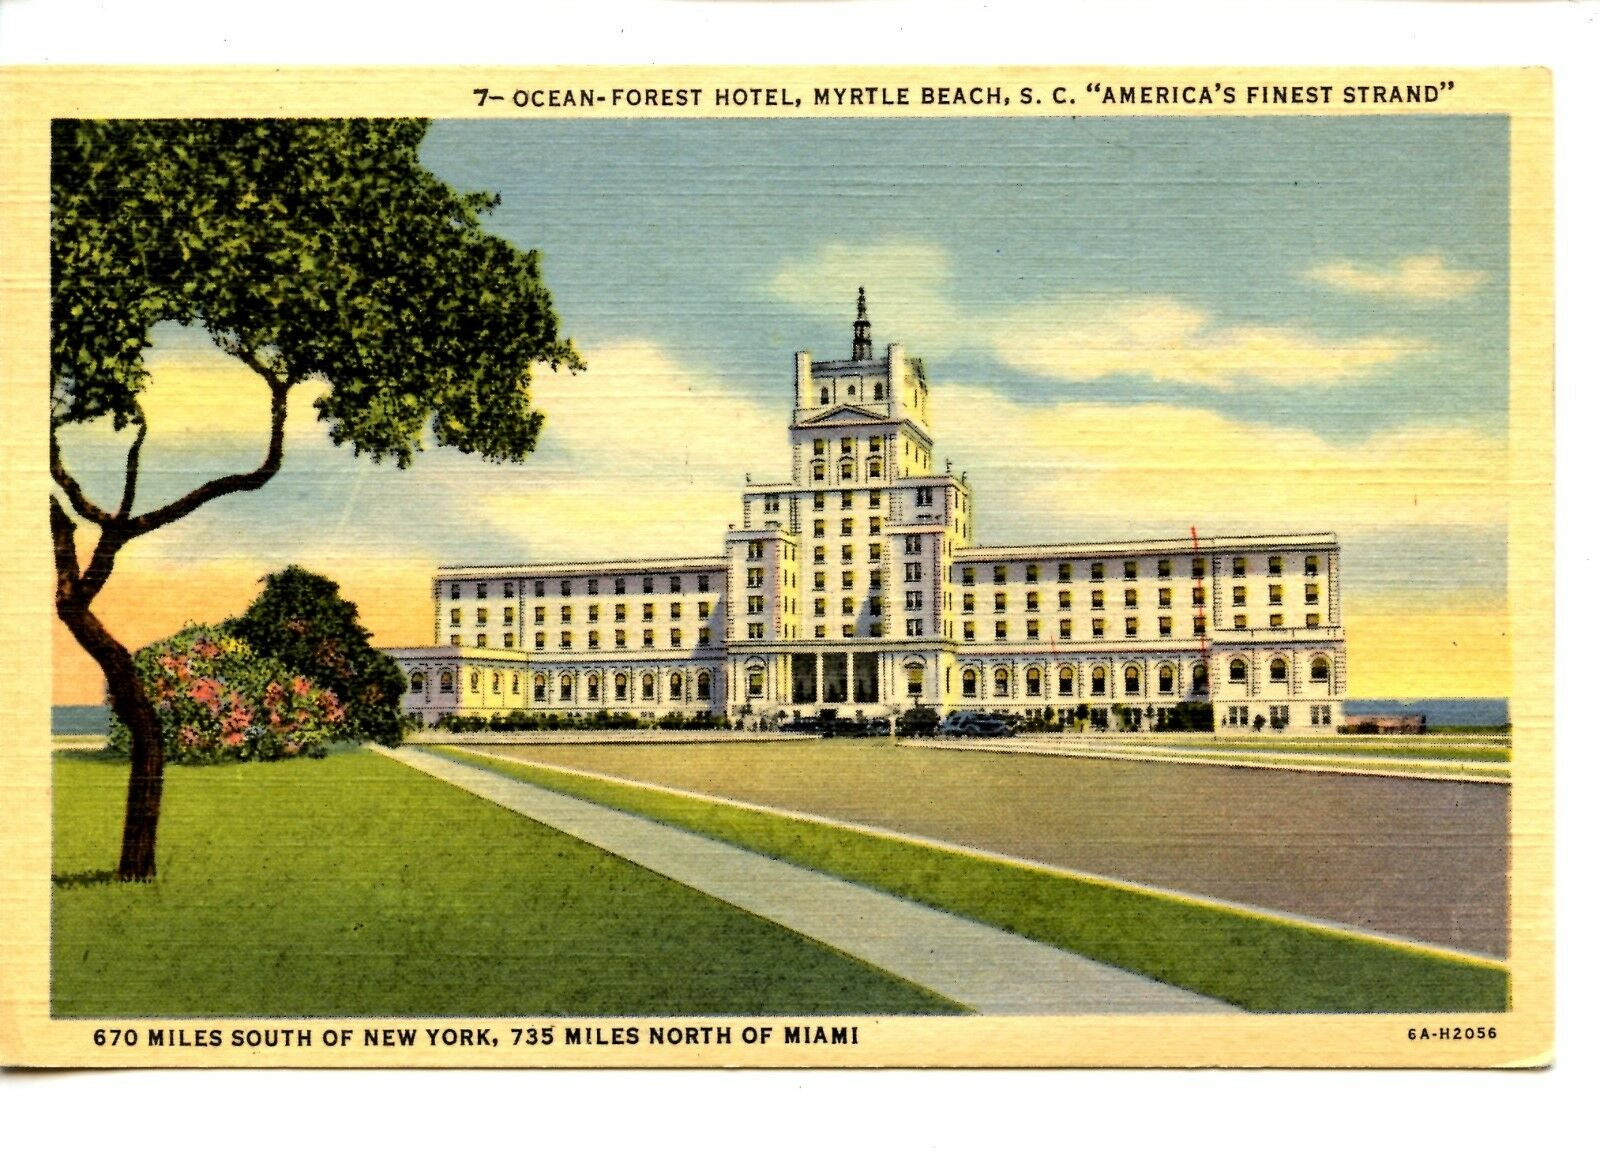 Ocean Forest Hotel Large Building Myrtle Beach South Carolina Vintage Postcard 1 Of 2only Available